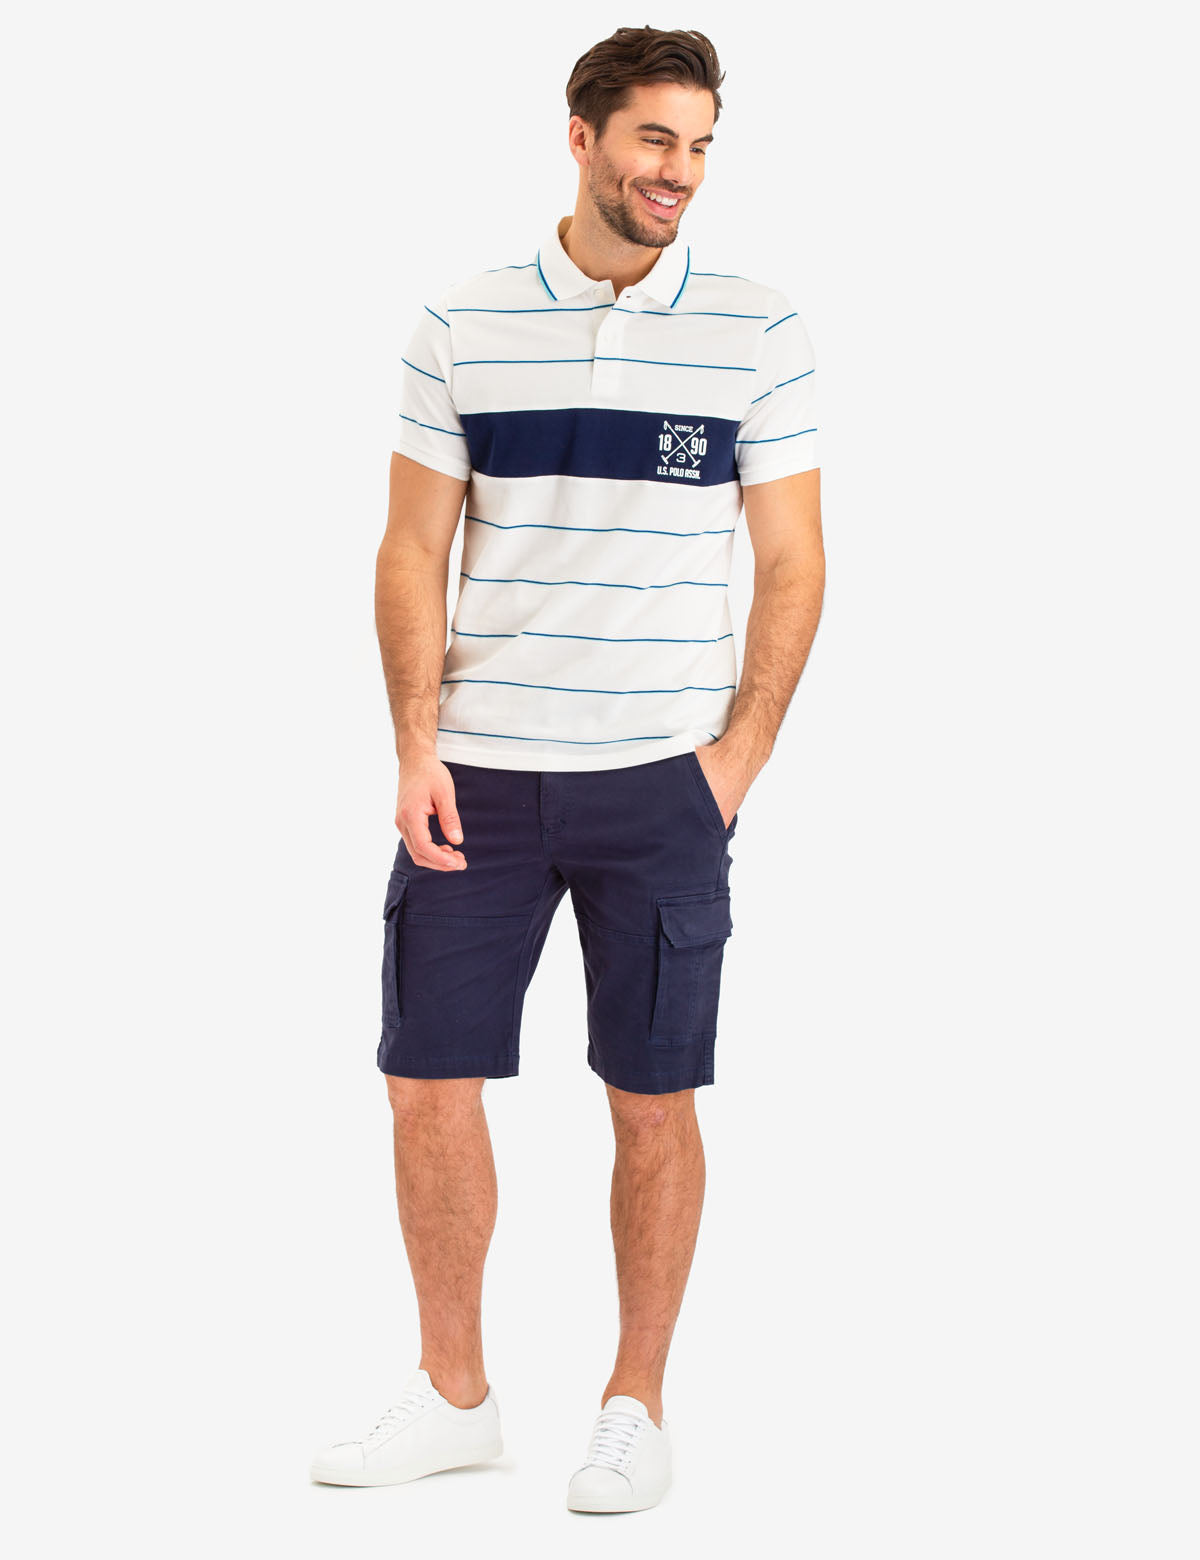 USPA STRIPED LOGO POLO SHIRT - U.S. Polo Assn.